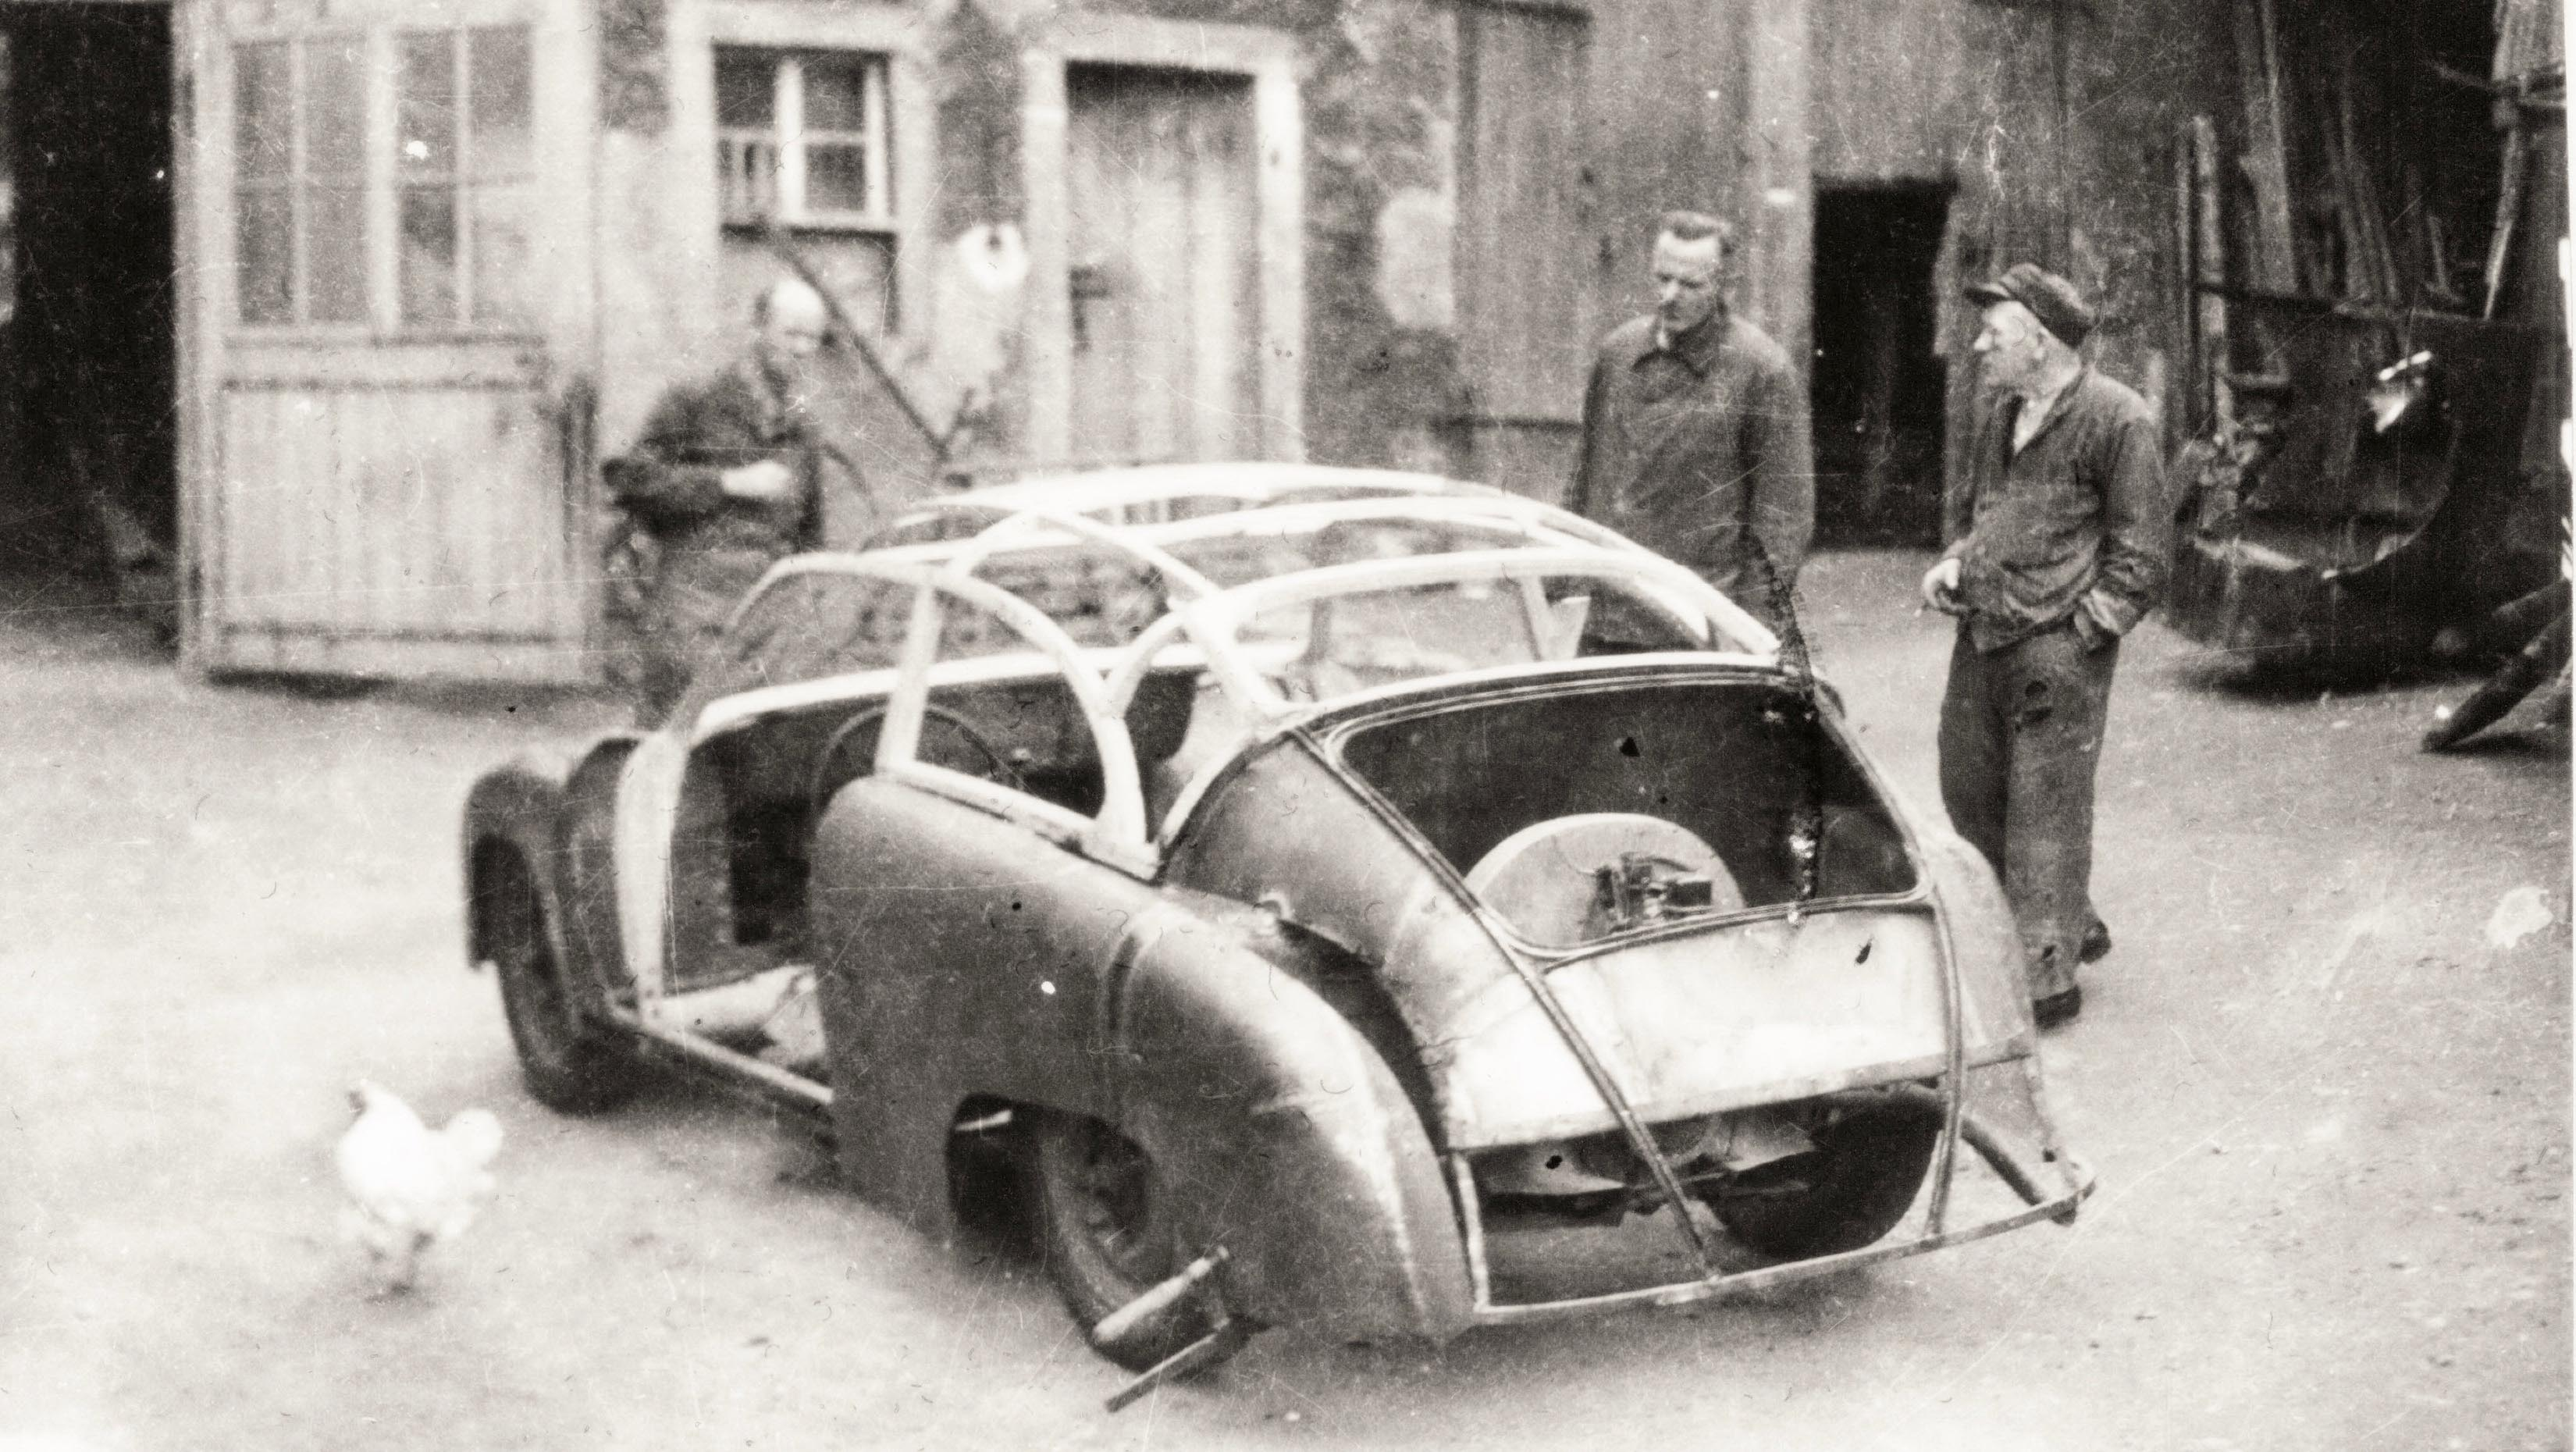 The first GDR Porsche under assembly in the courtyard of the Lindner body makers